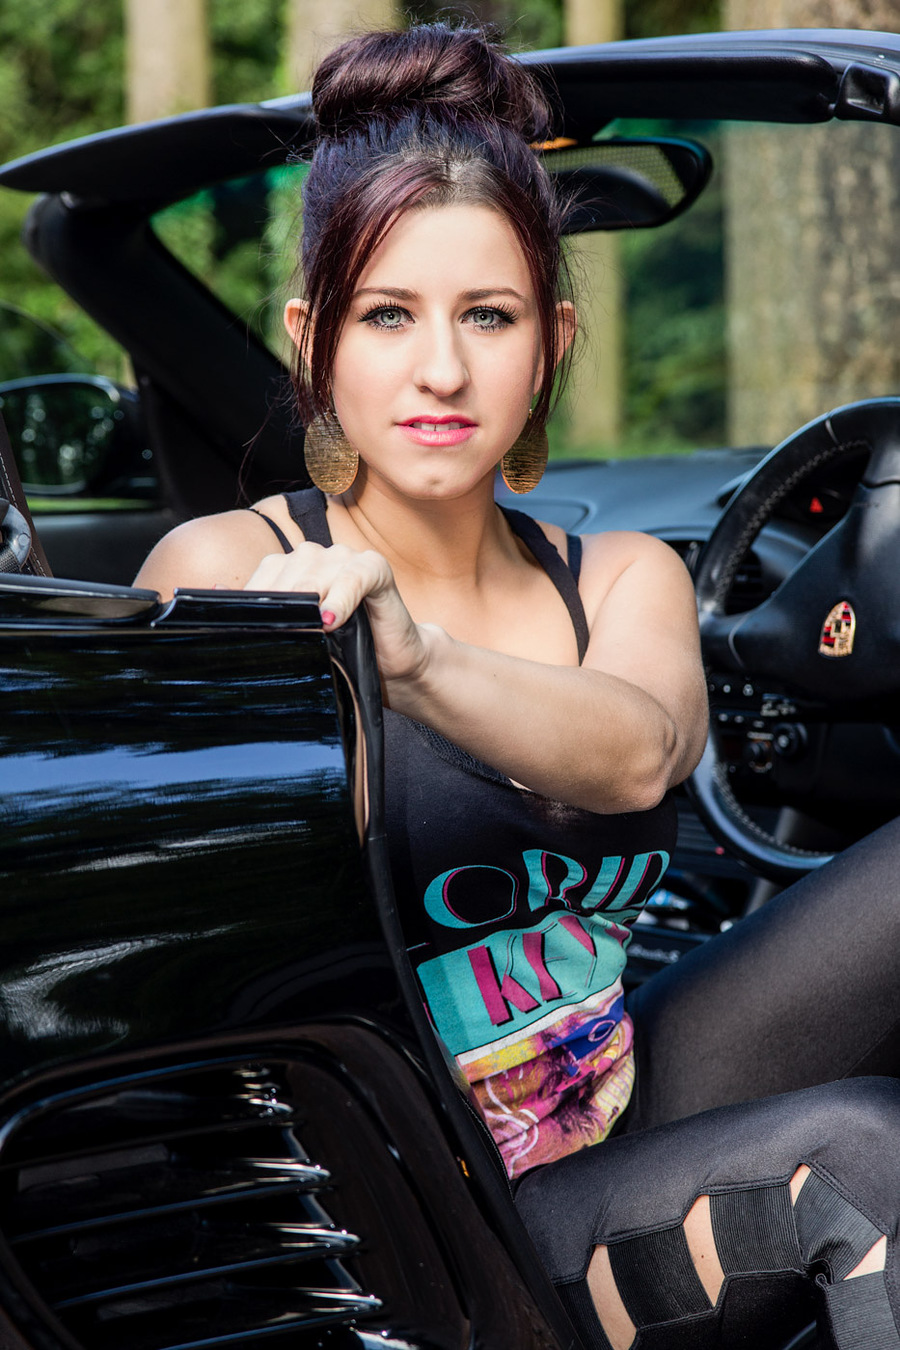 Photography by Bob Hardy, Model Carly / Uploaded 17th April 2015 @ 05:19 PM